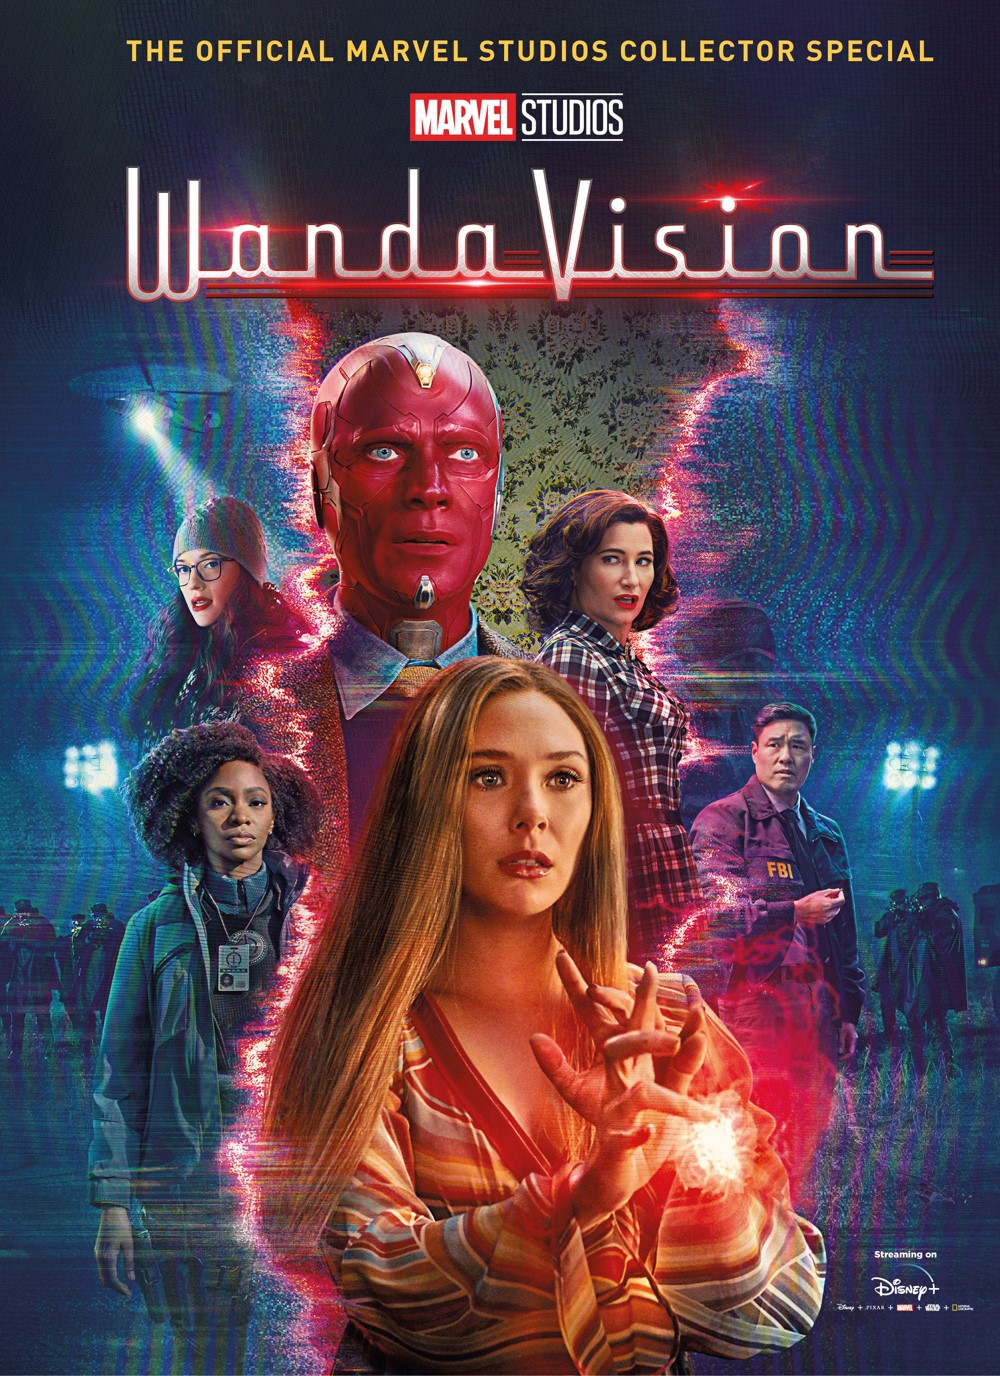 WandaVision-Hardback-Cover ComicList Previews: MARVEL STUDIOS' WANDAVISION THE OFFICIAL COLLECTOR'S SPECIAL